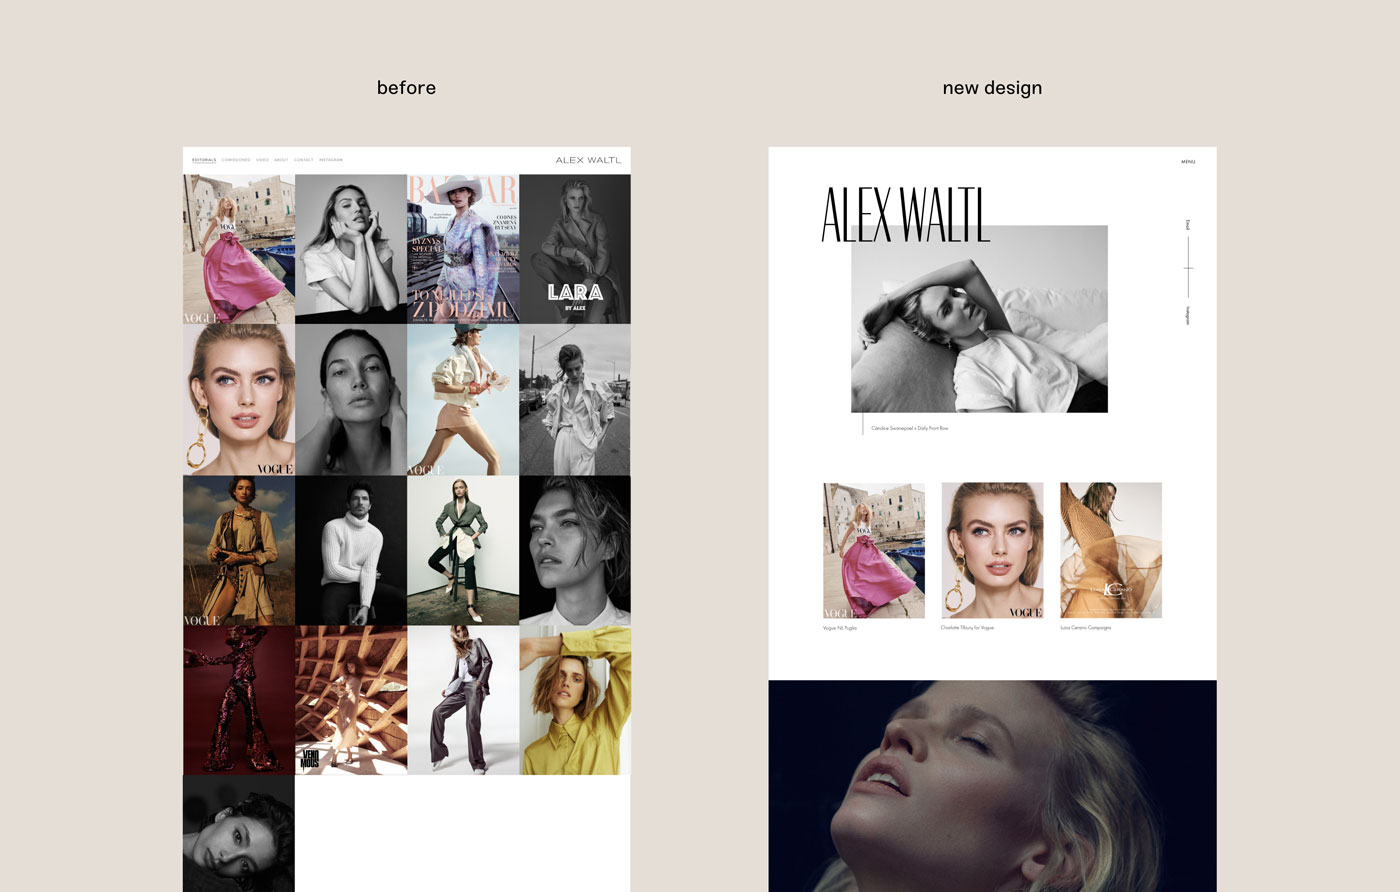 comparison of the old design and the redesign of a website for photographer Alex Waltl